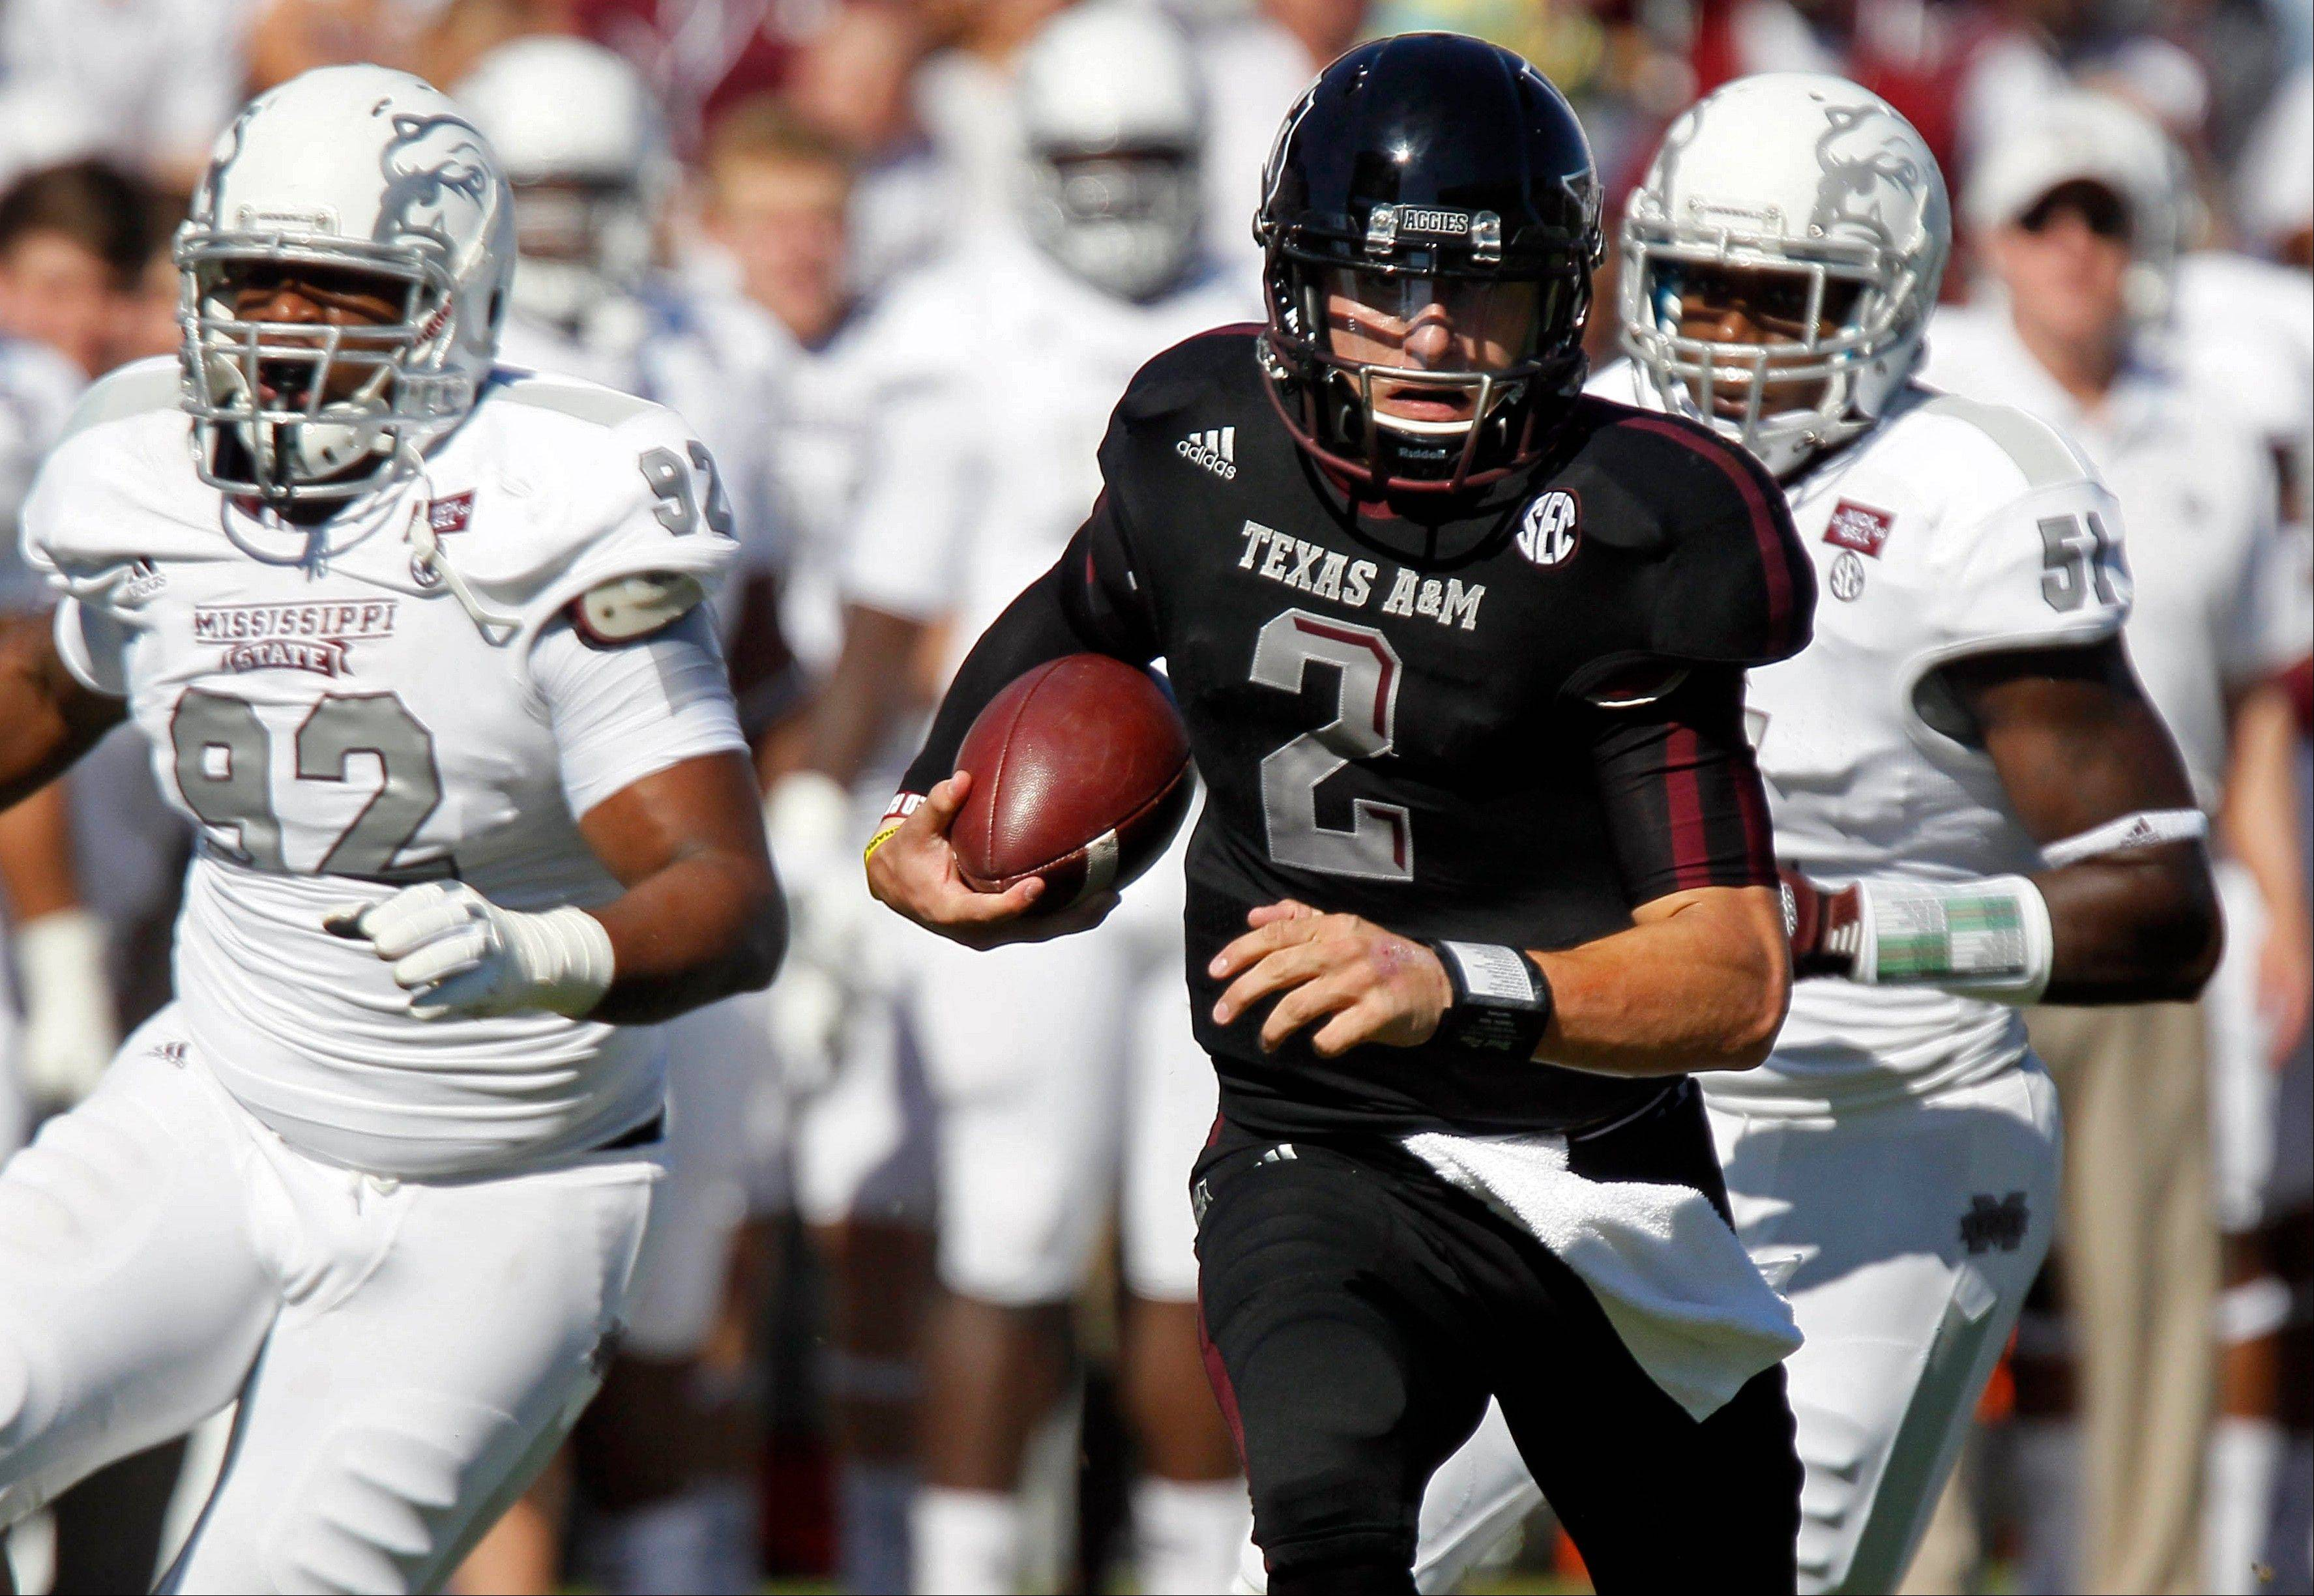 Texas A&M quarterback Johnny Manziel runs past Mississippi State defensive lineman Kaleb Eulls and other defenders for a touchdown Saturday during the second quarter in Starkville, Miss.